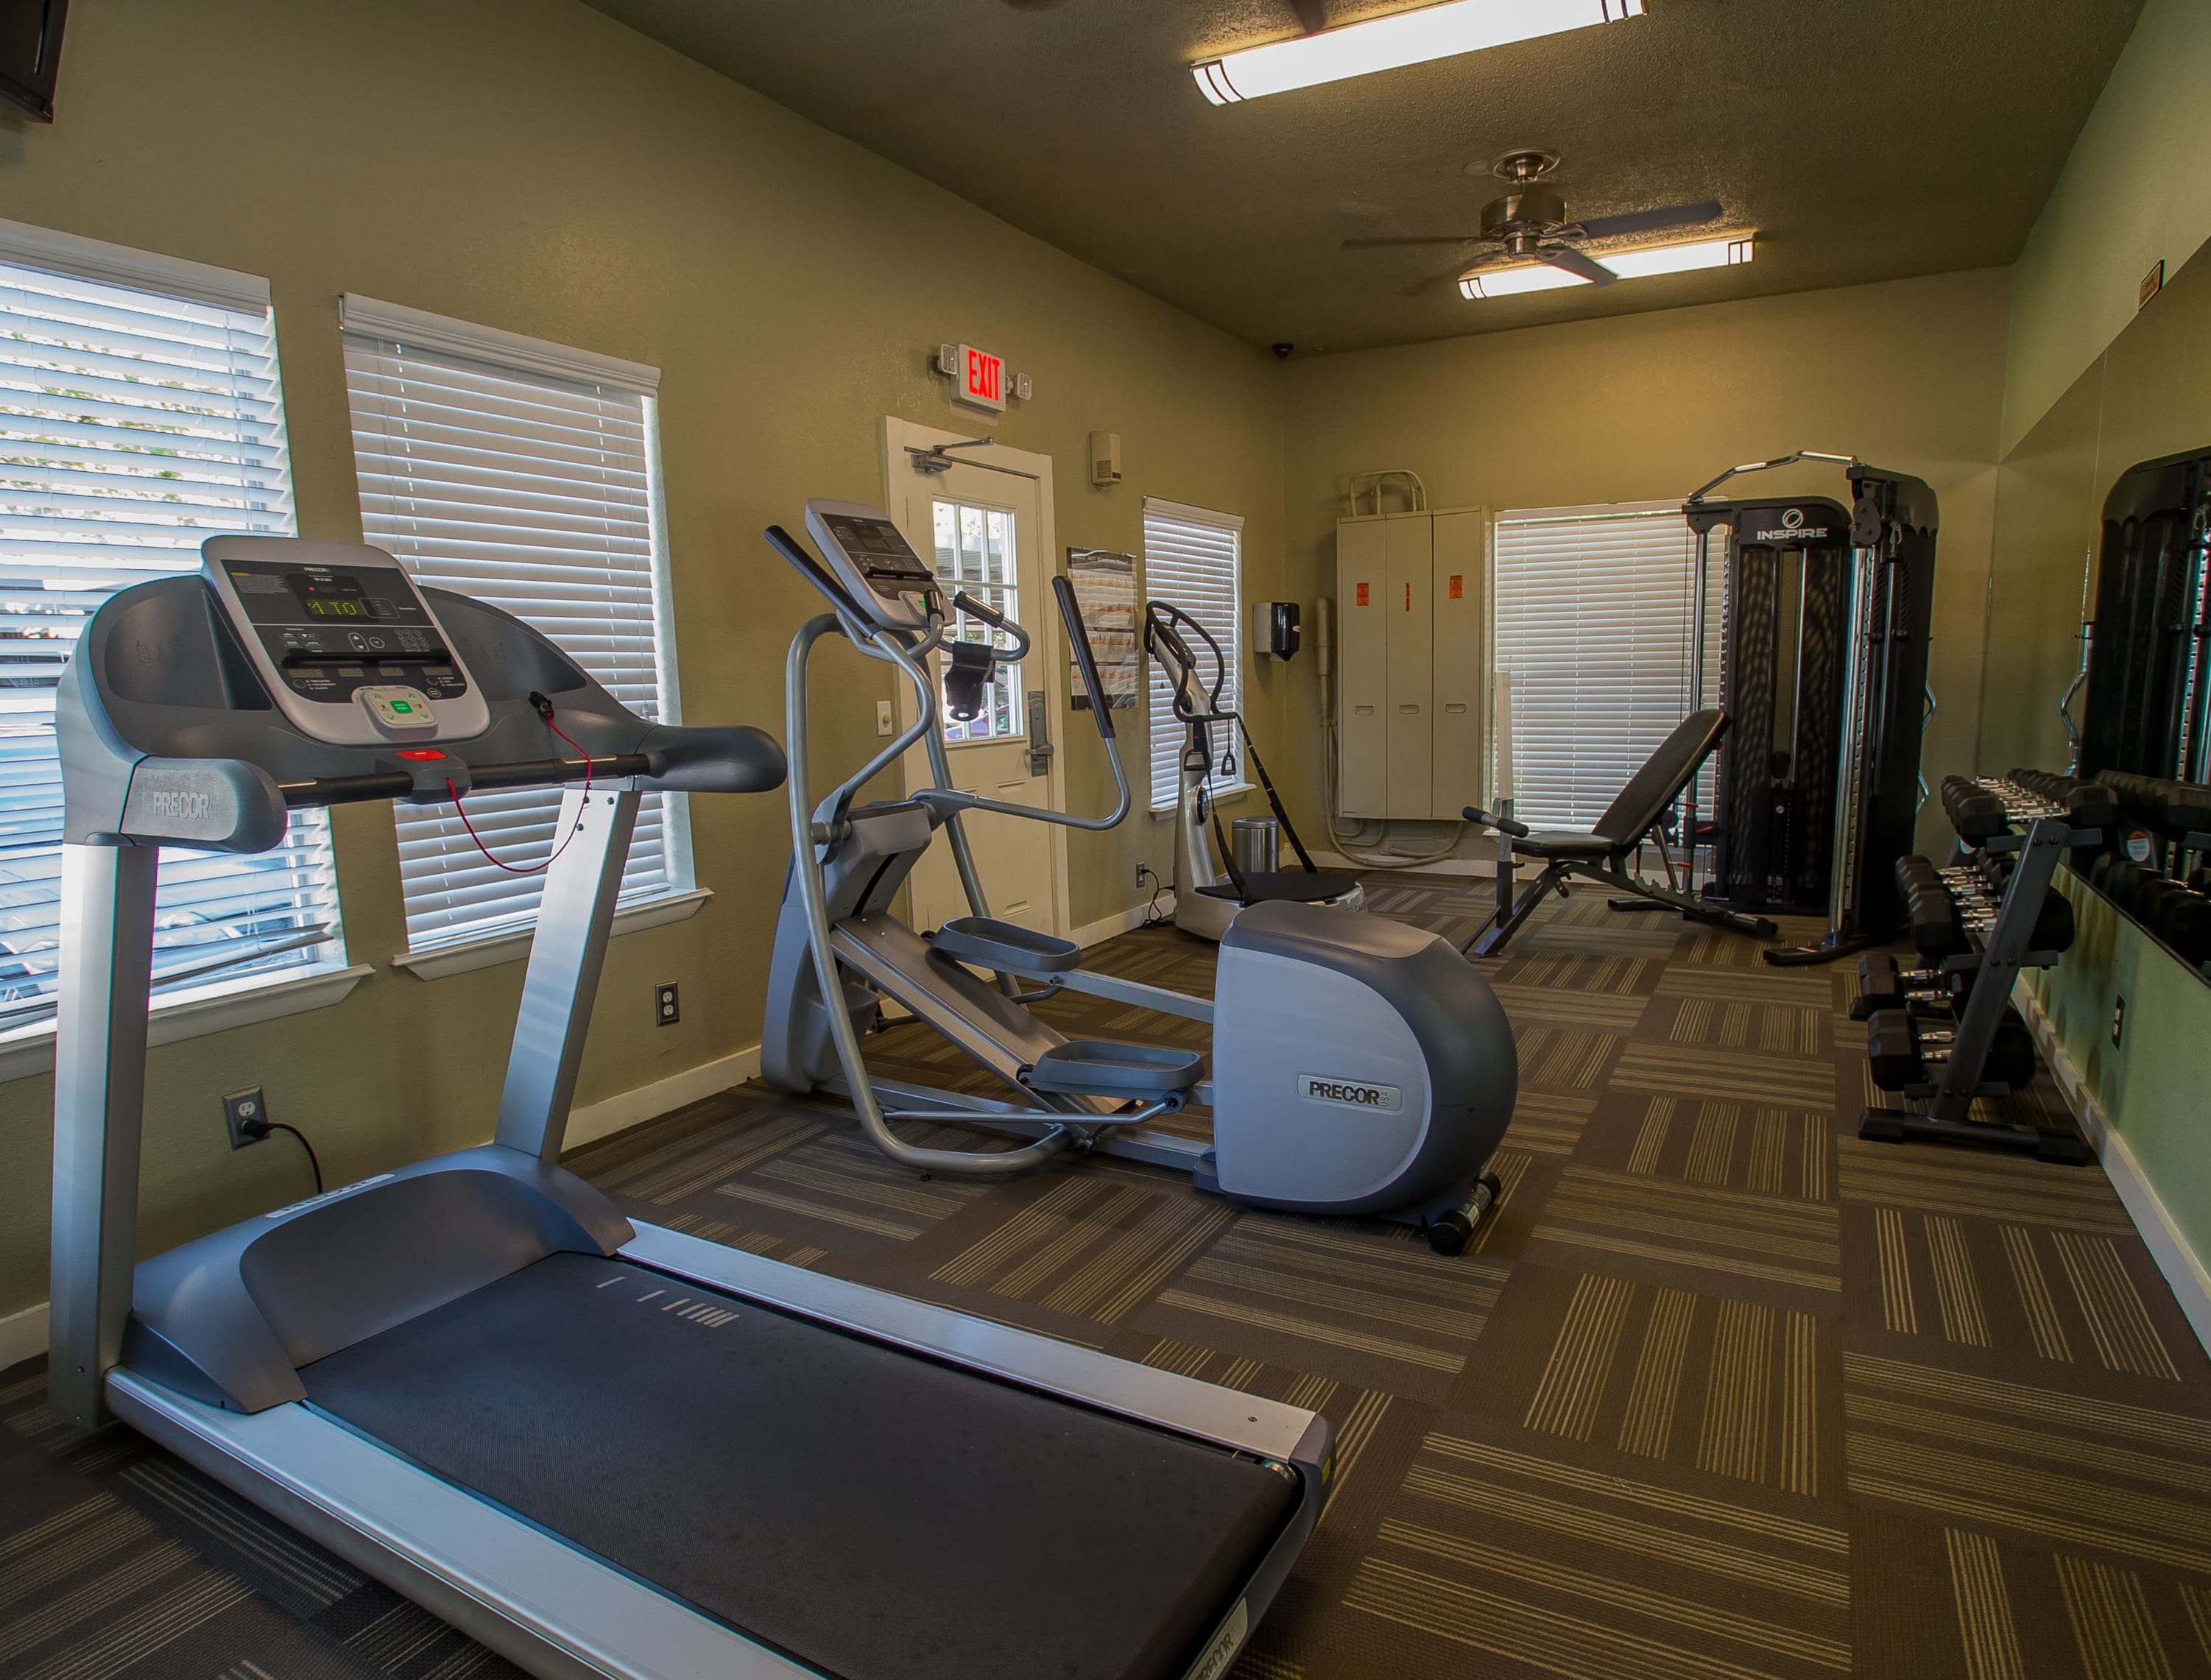 Fitness center Barcelona Apartments in Tulsa, Oklahoma